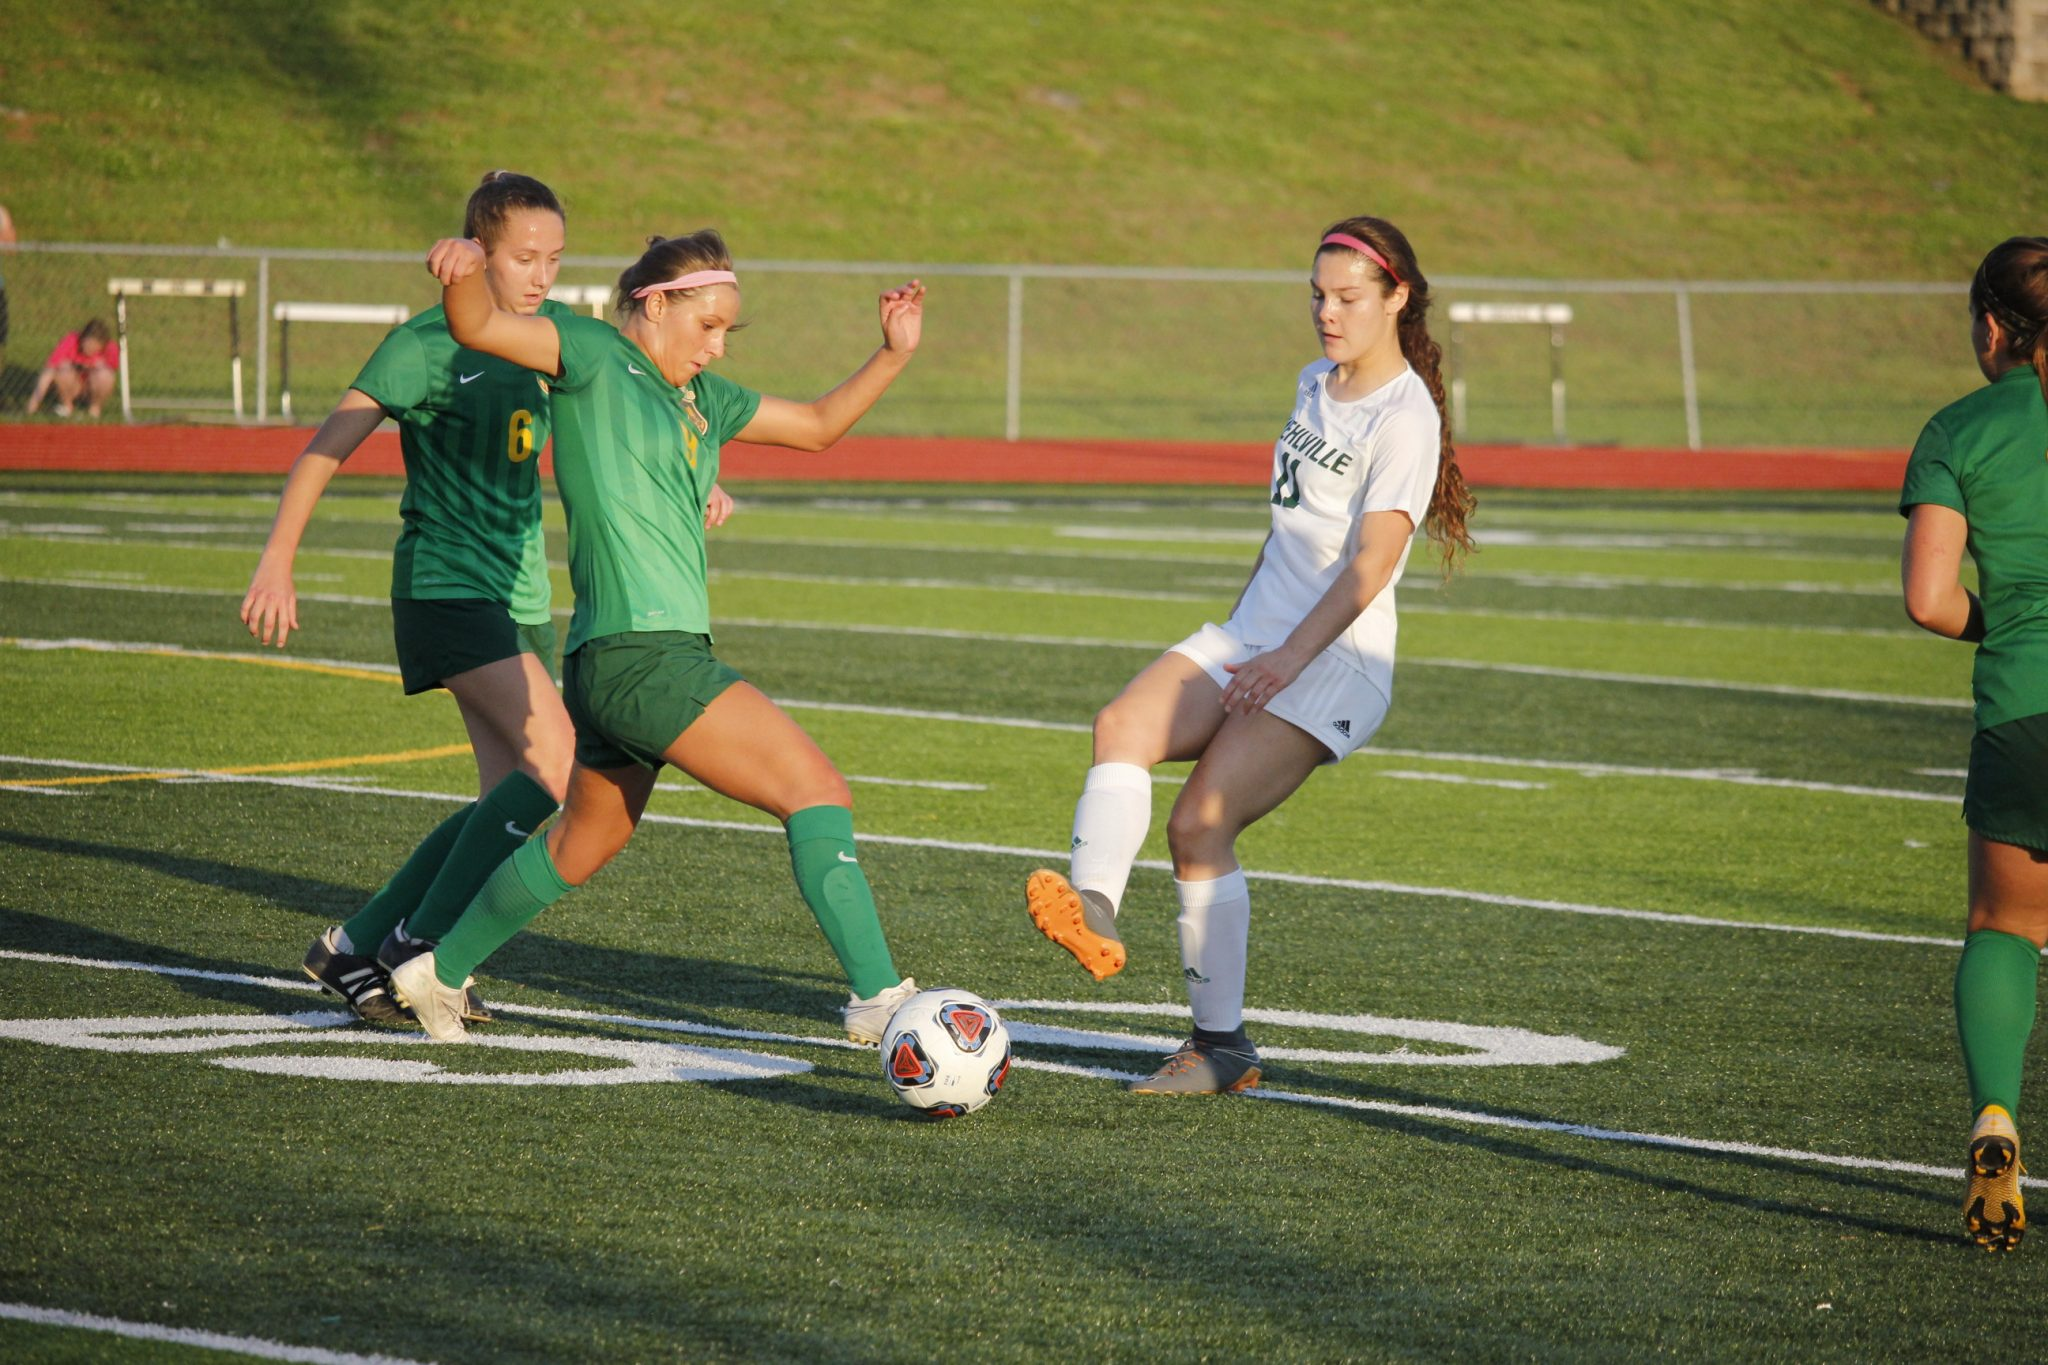 From left; Lindbergh midfield Meghan Baudendistel, senior, and Lindbergh defender Payton Husman, senior, protect the ball from Mehlville forward Grace Ledbetter, junior, during a game at Oakville High School May 15. Lindbergh topped Mehlville 1-0 in overtime. Photo by Erin Achenbach.